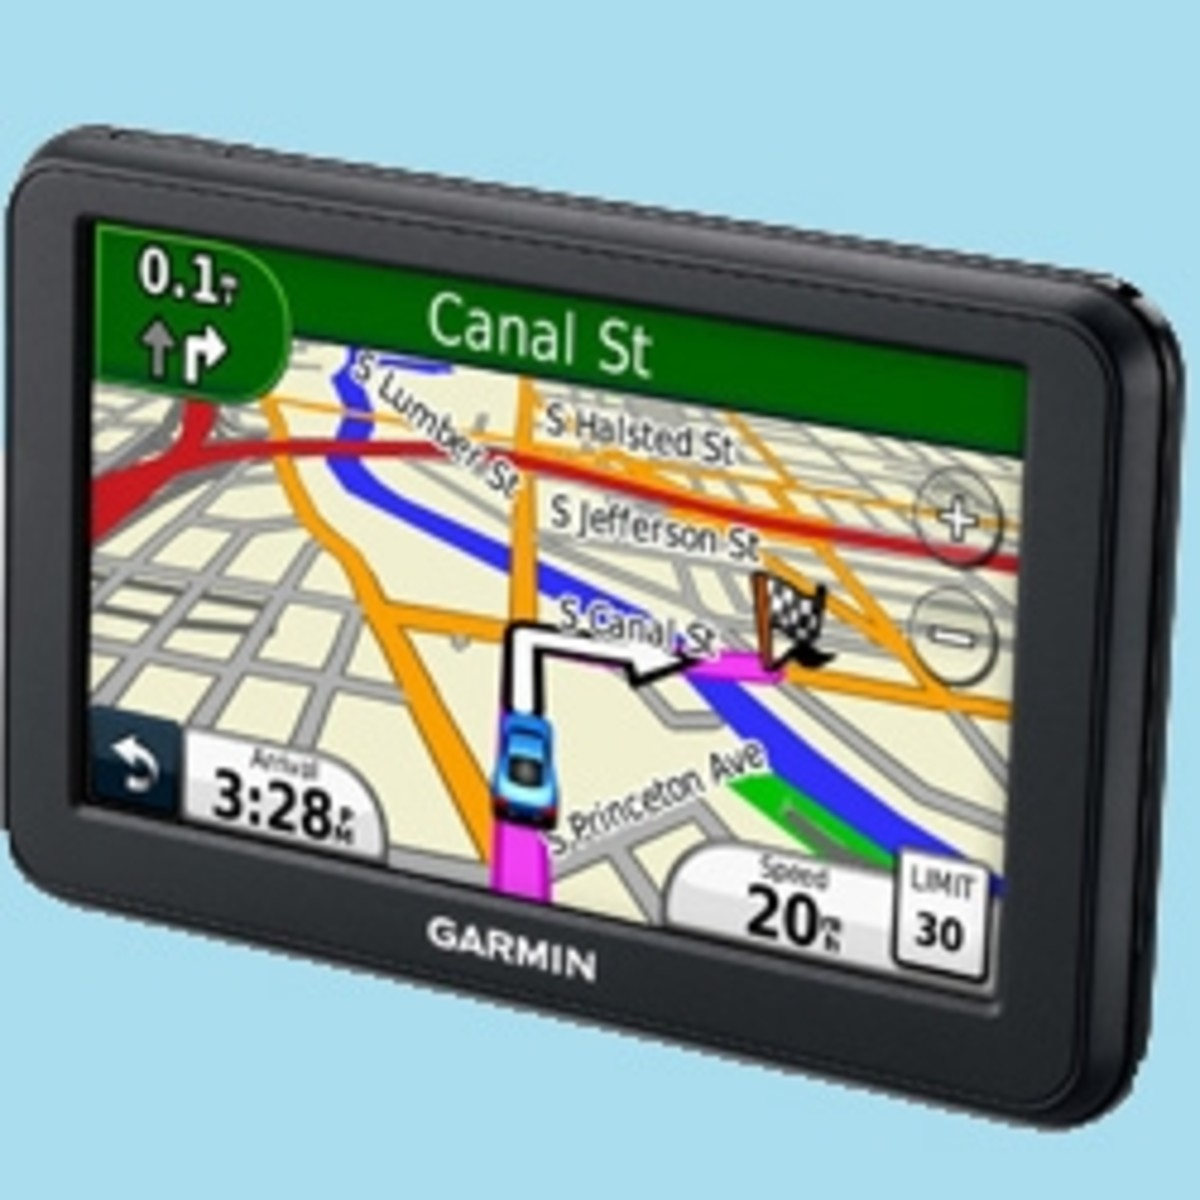 Garmin GPS Navigator for Travel